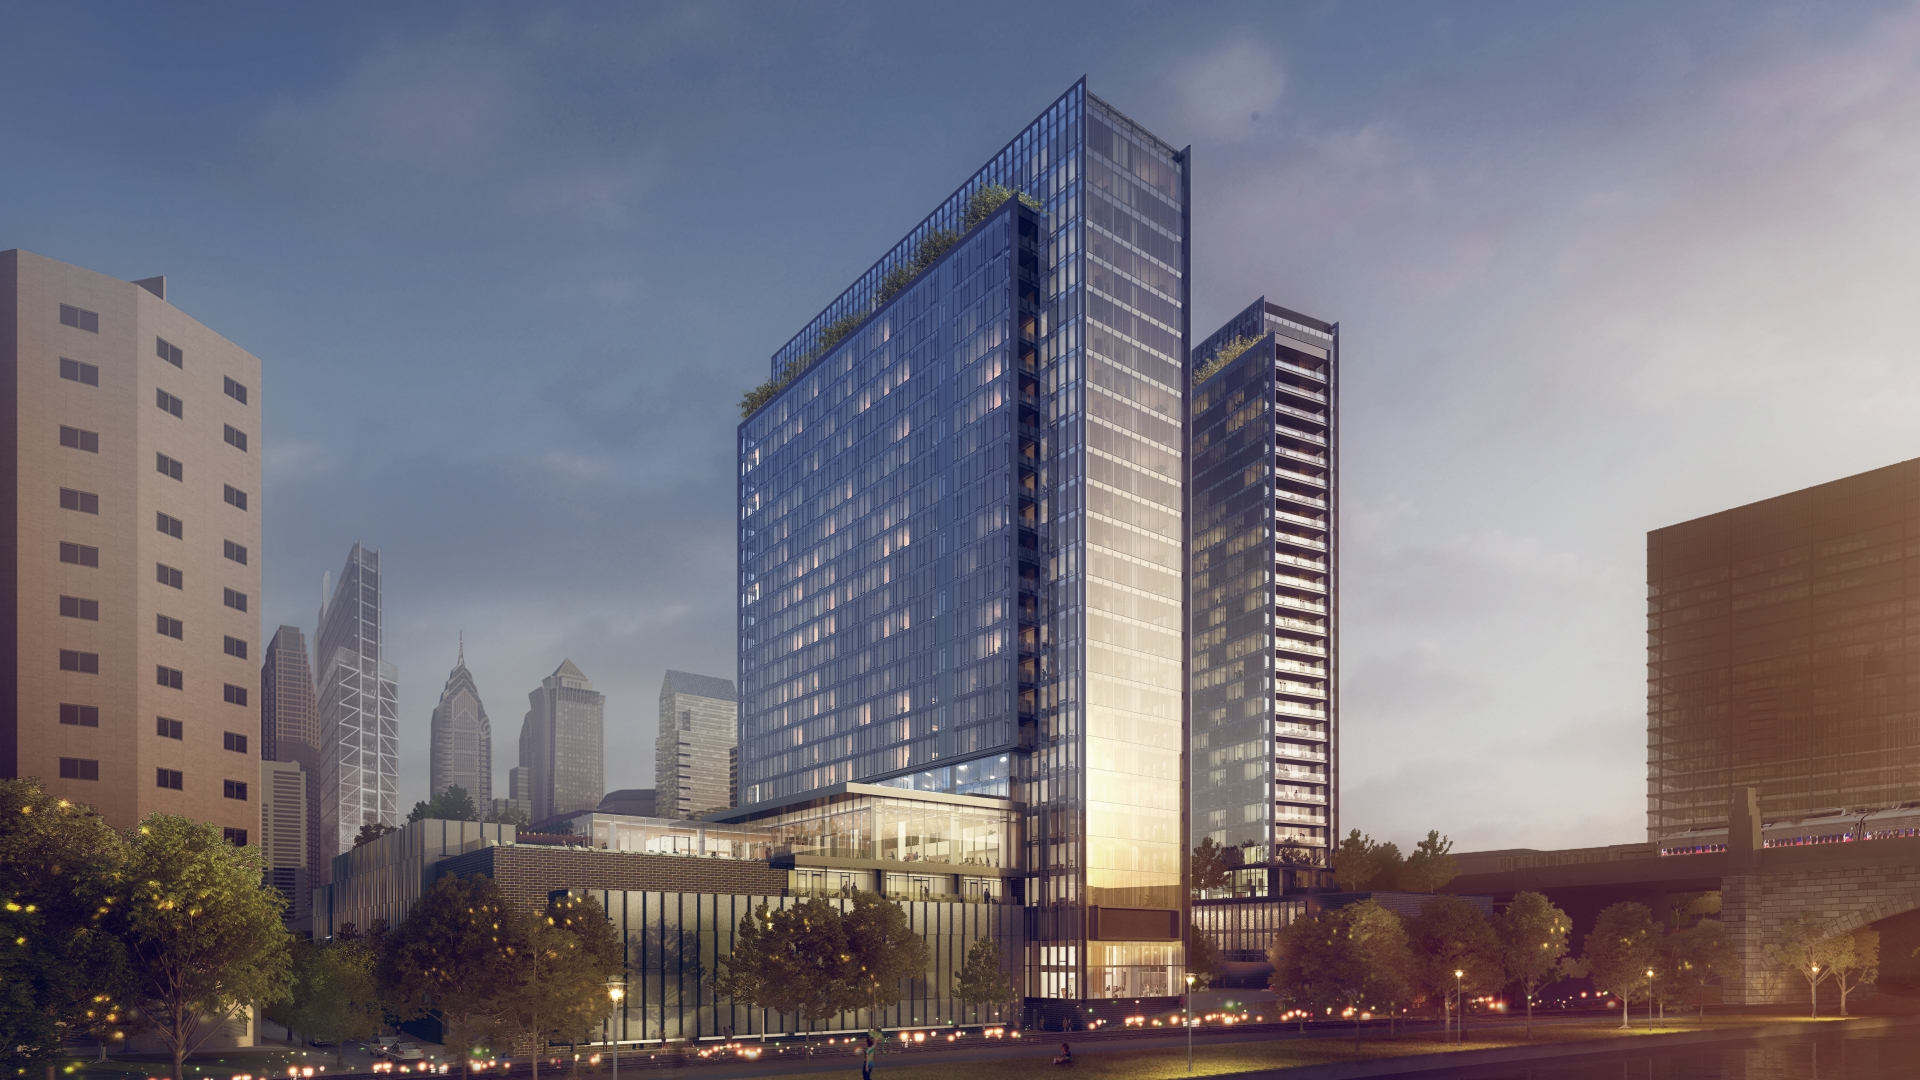 Rendering of proposed building